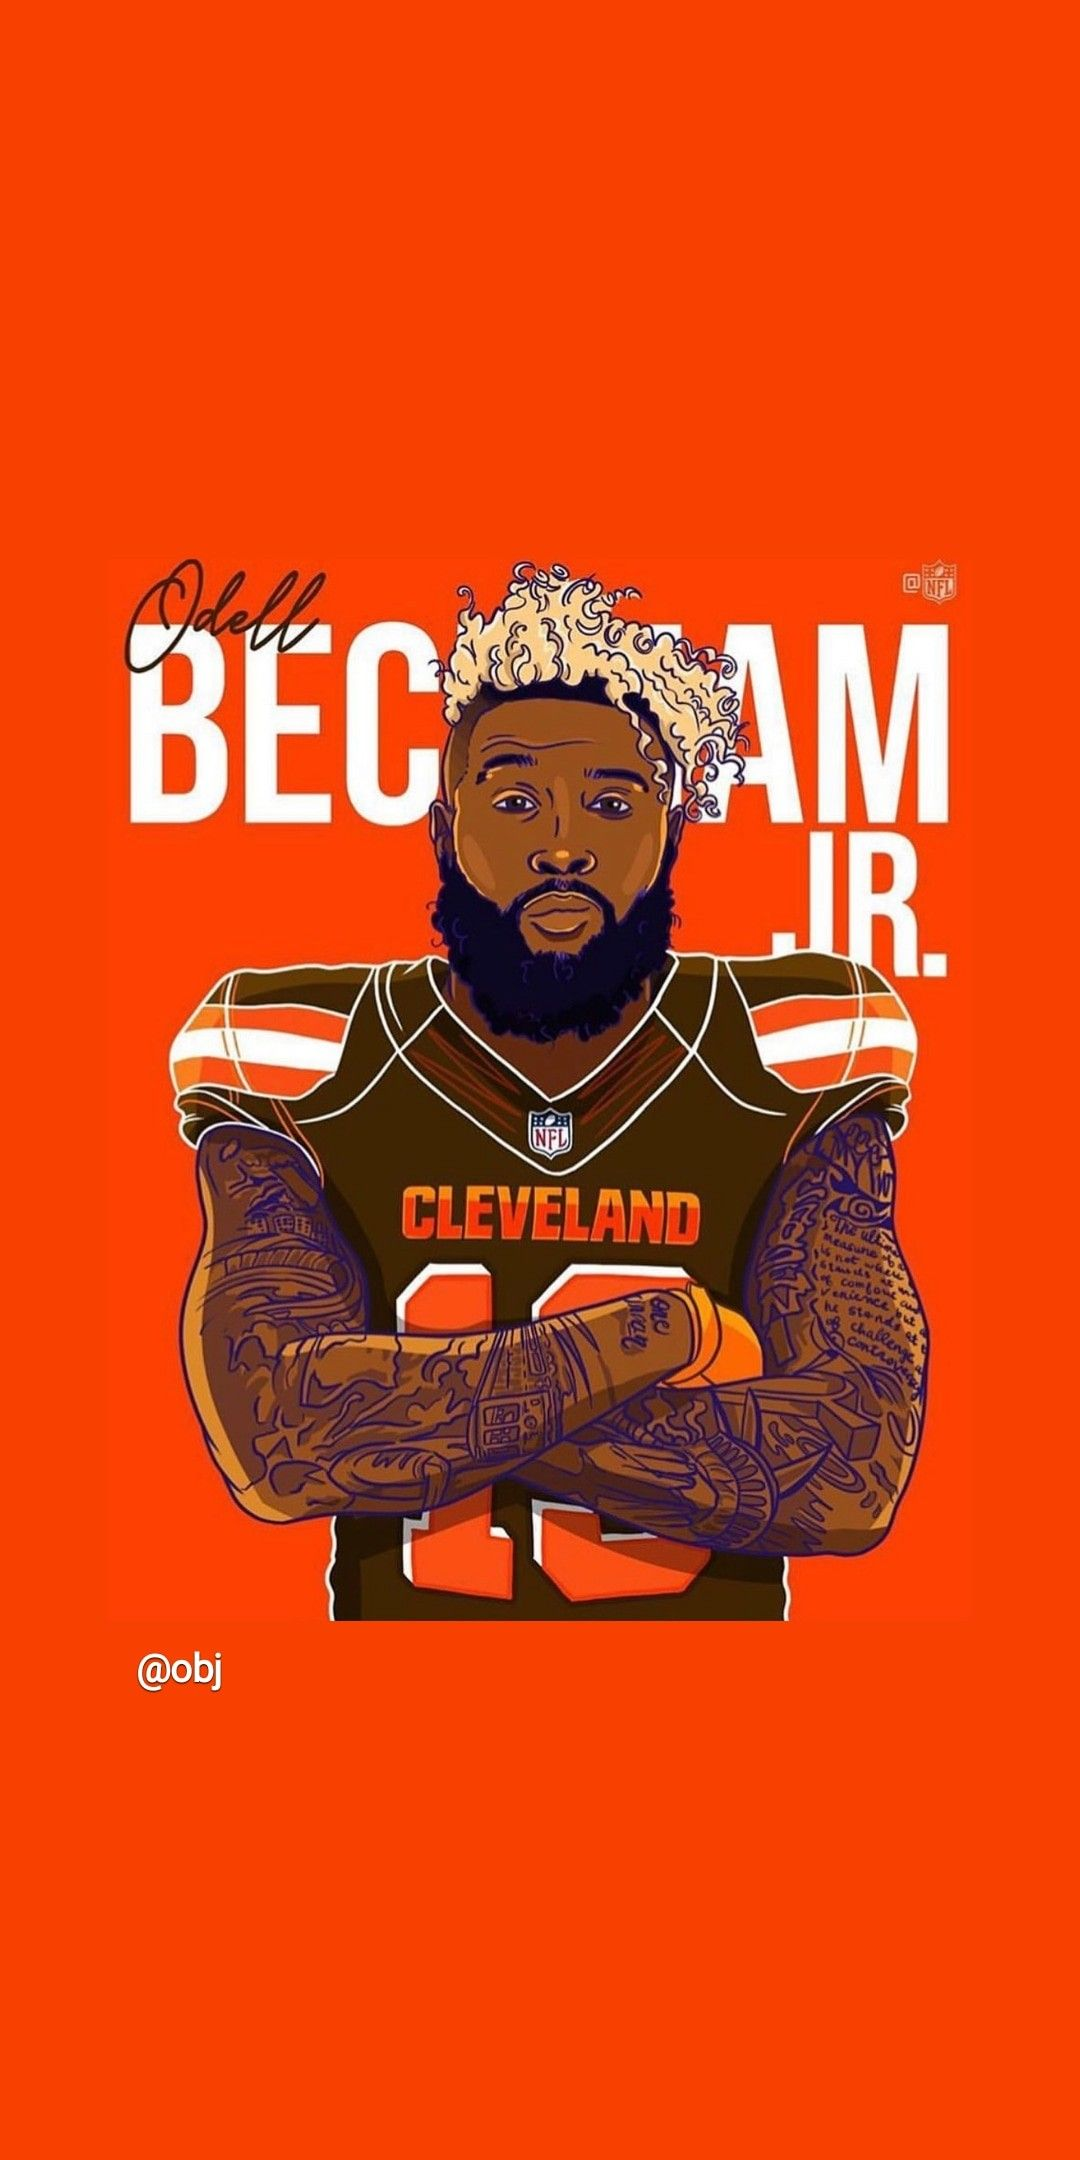 Pin by cindy ervin on browns Odell beckham jr wallpapers